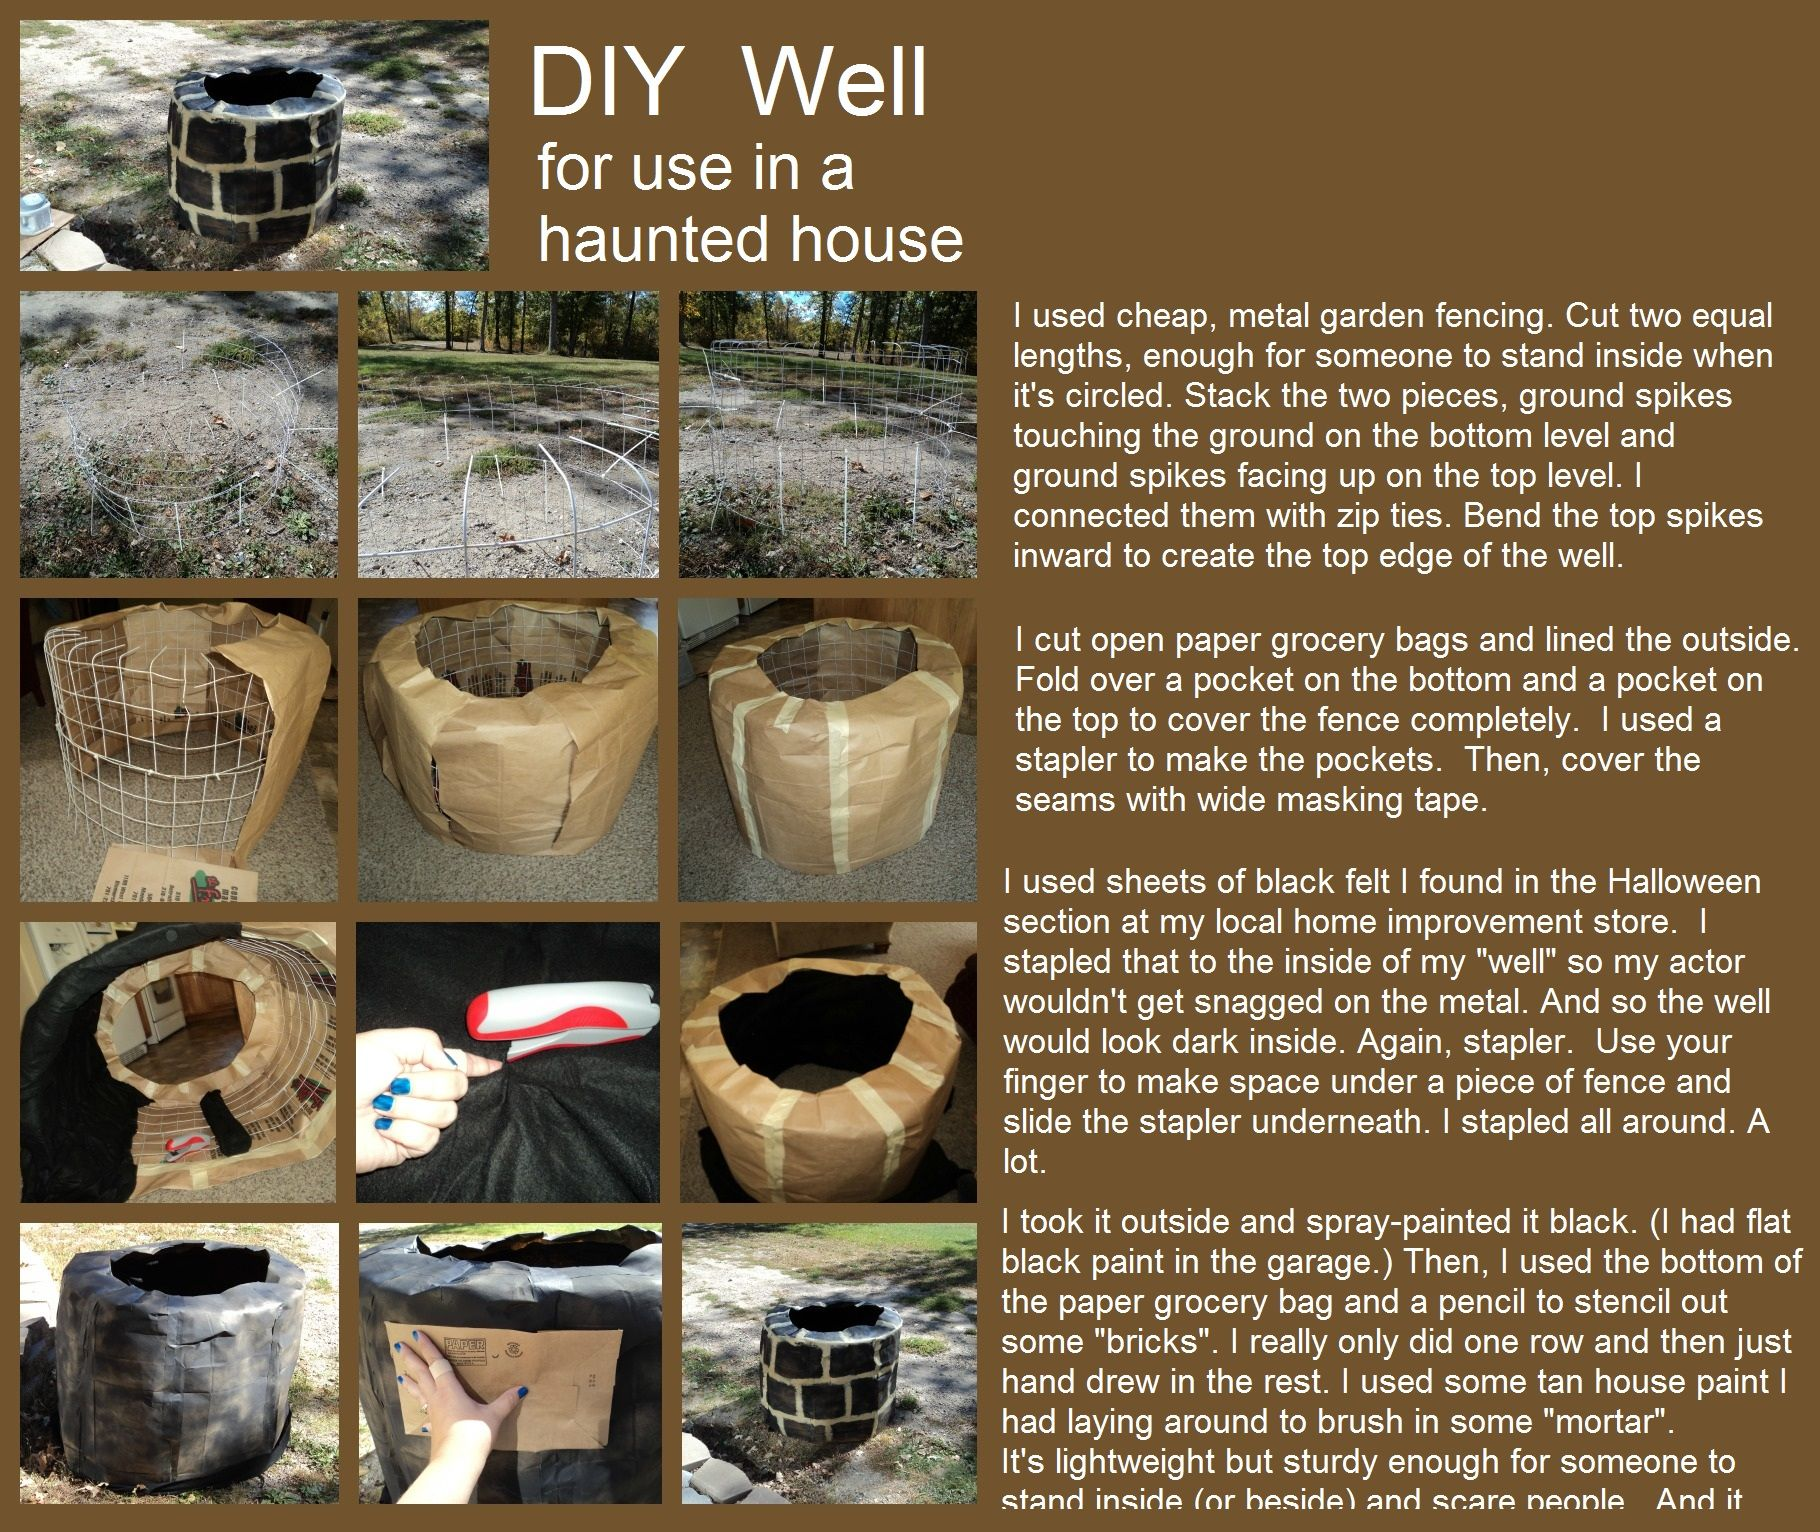 DIY scary well, for use in a haunted house / garage / yard